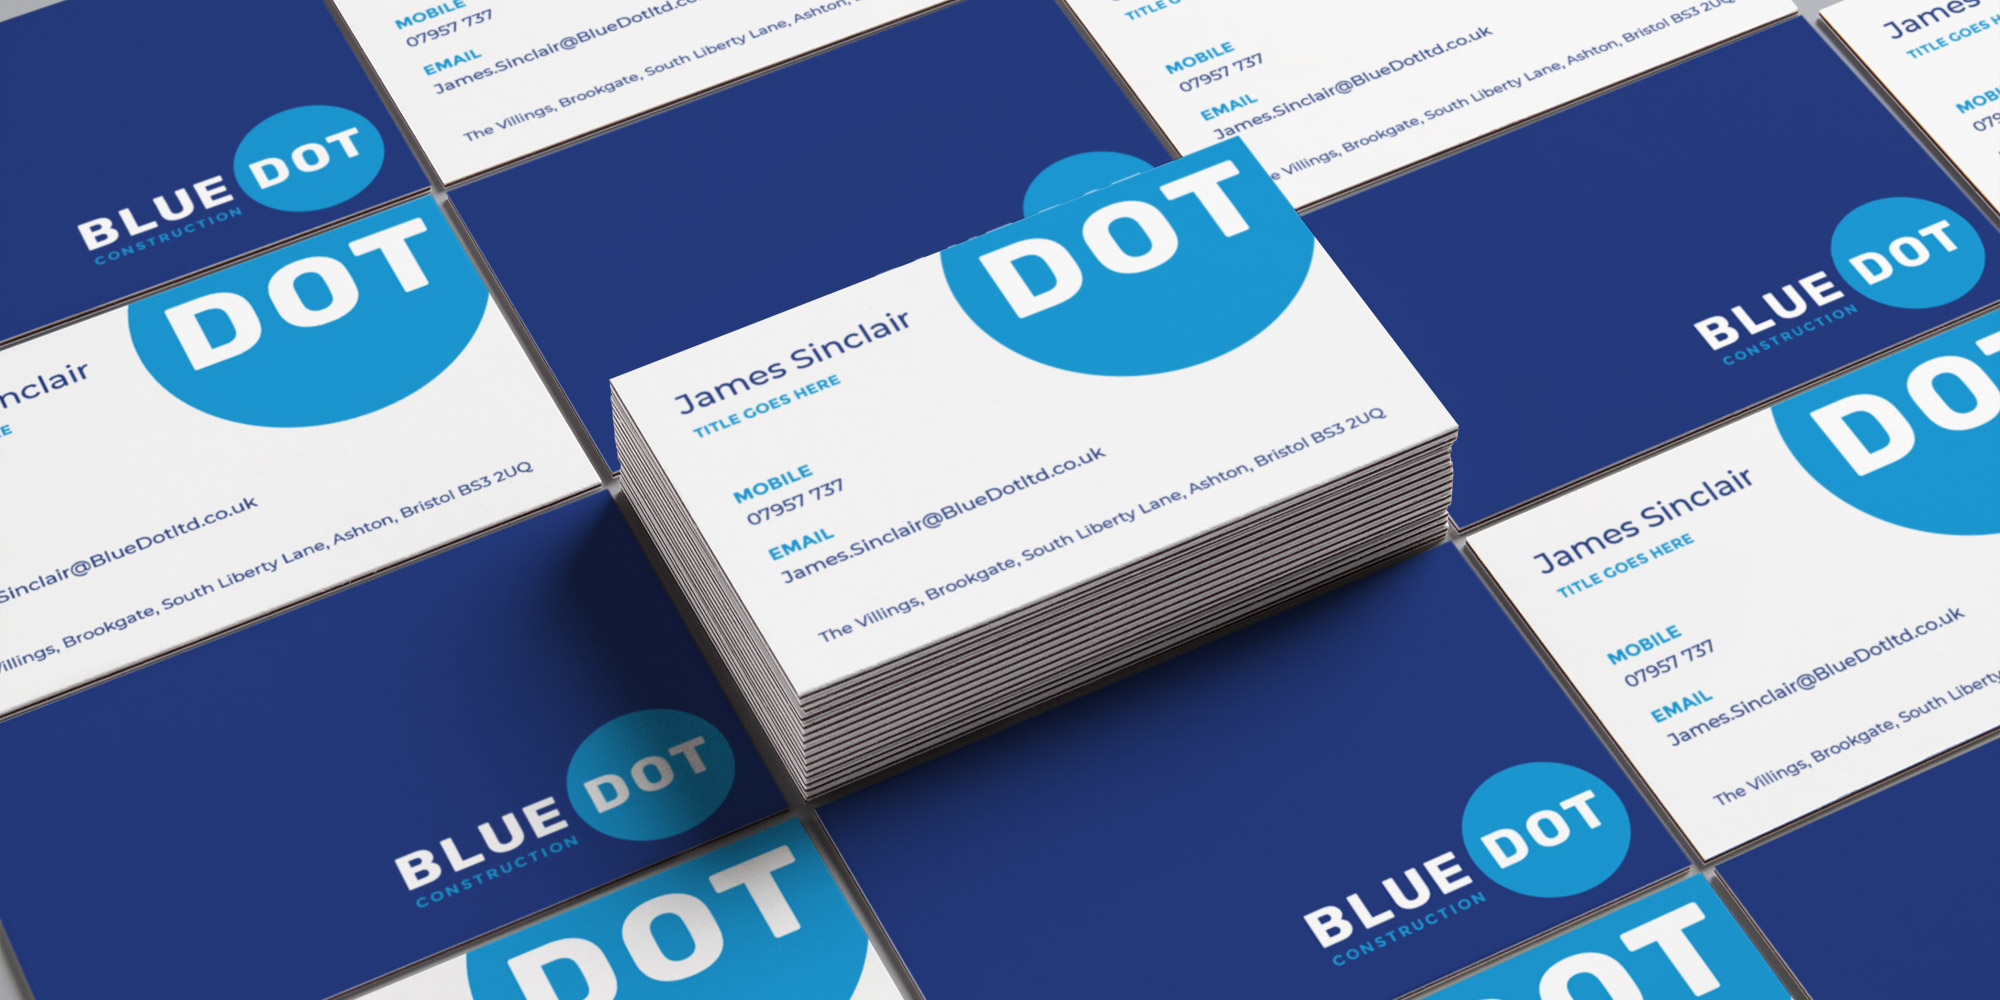 Blue Dot Construction Logo Design on Business Cards